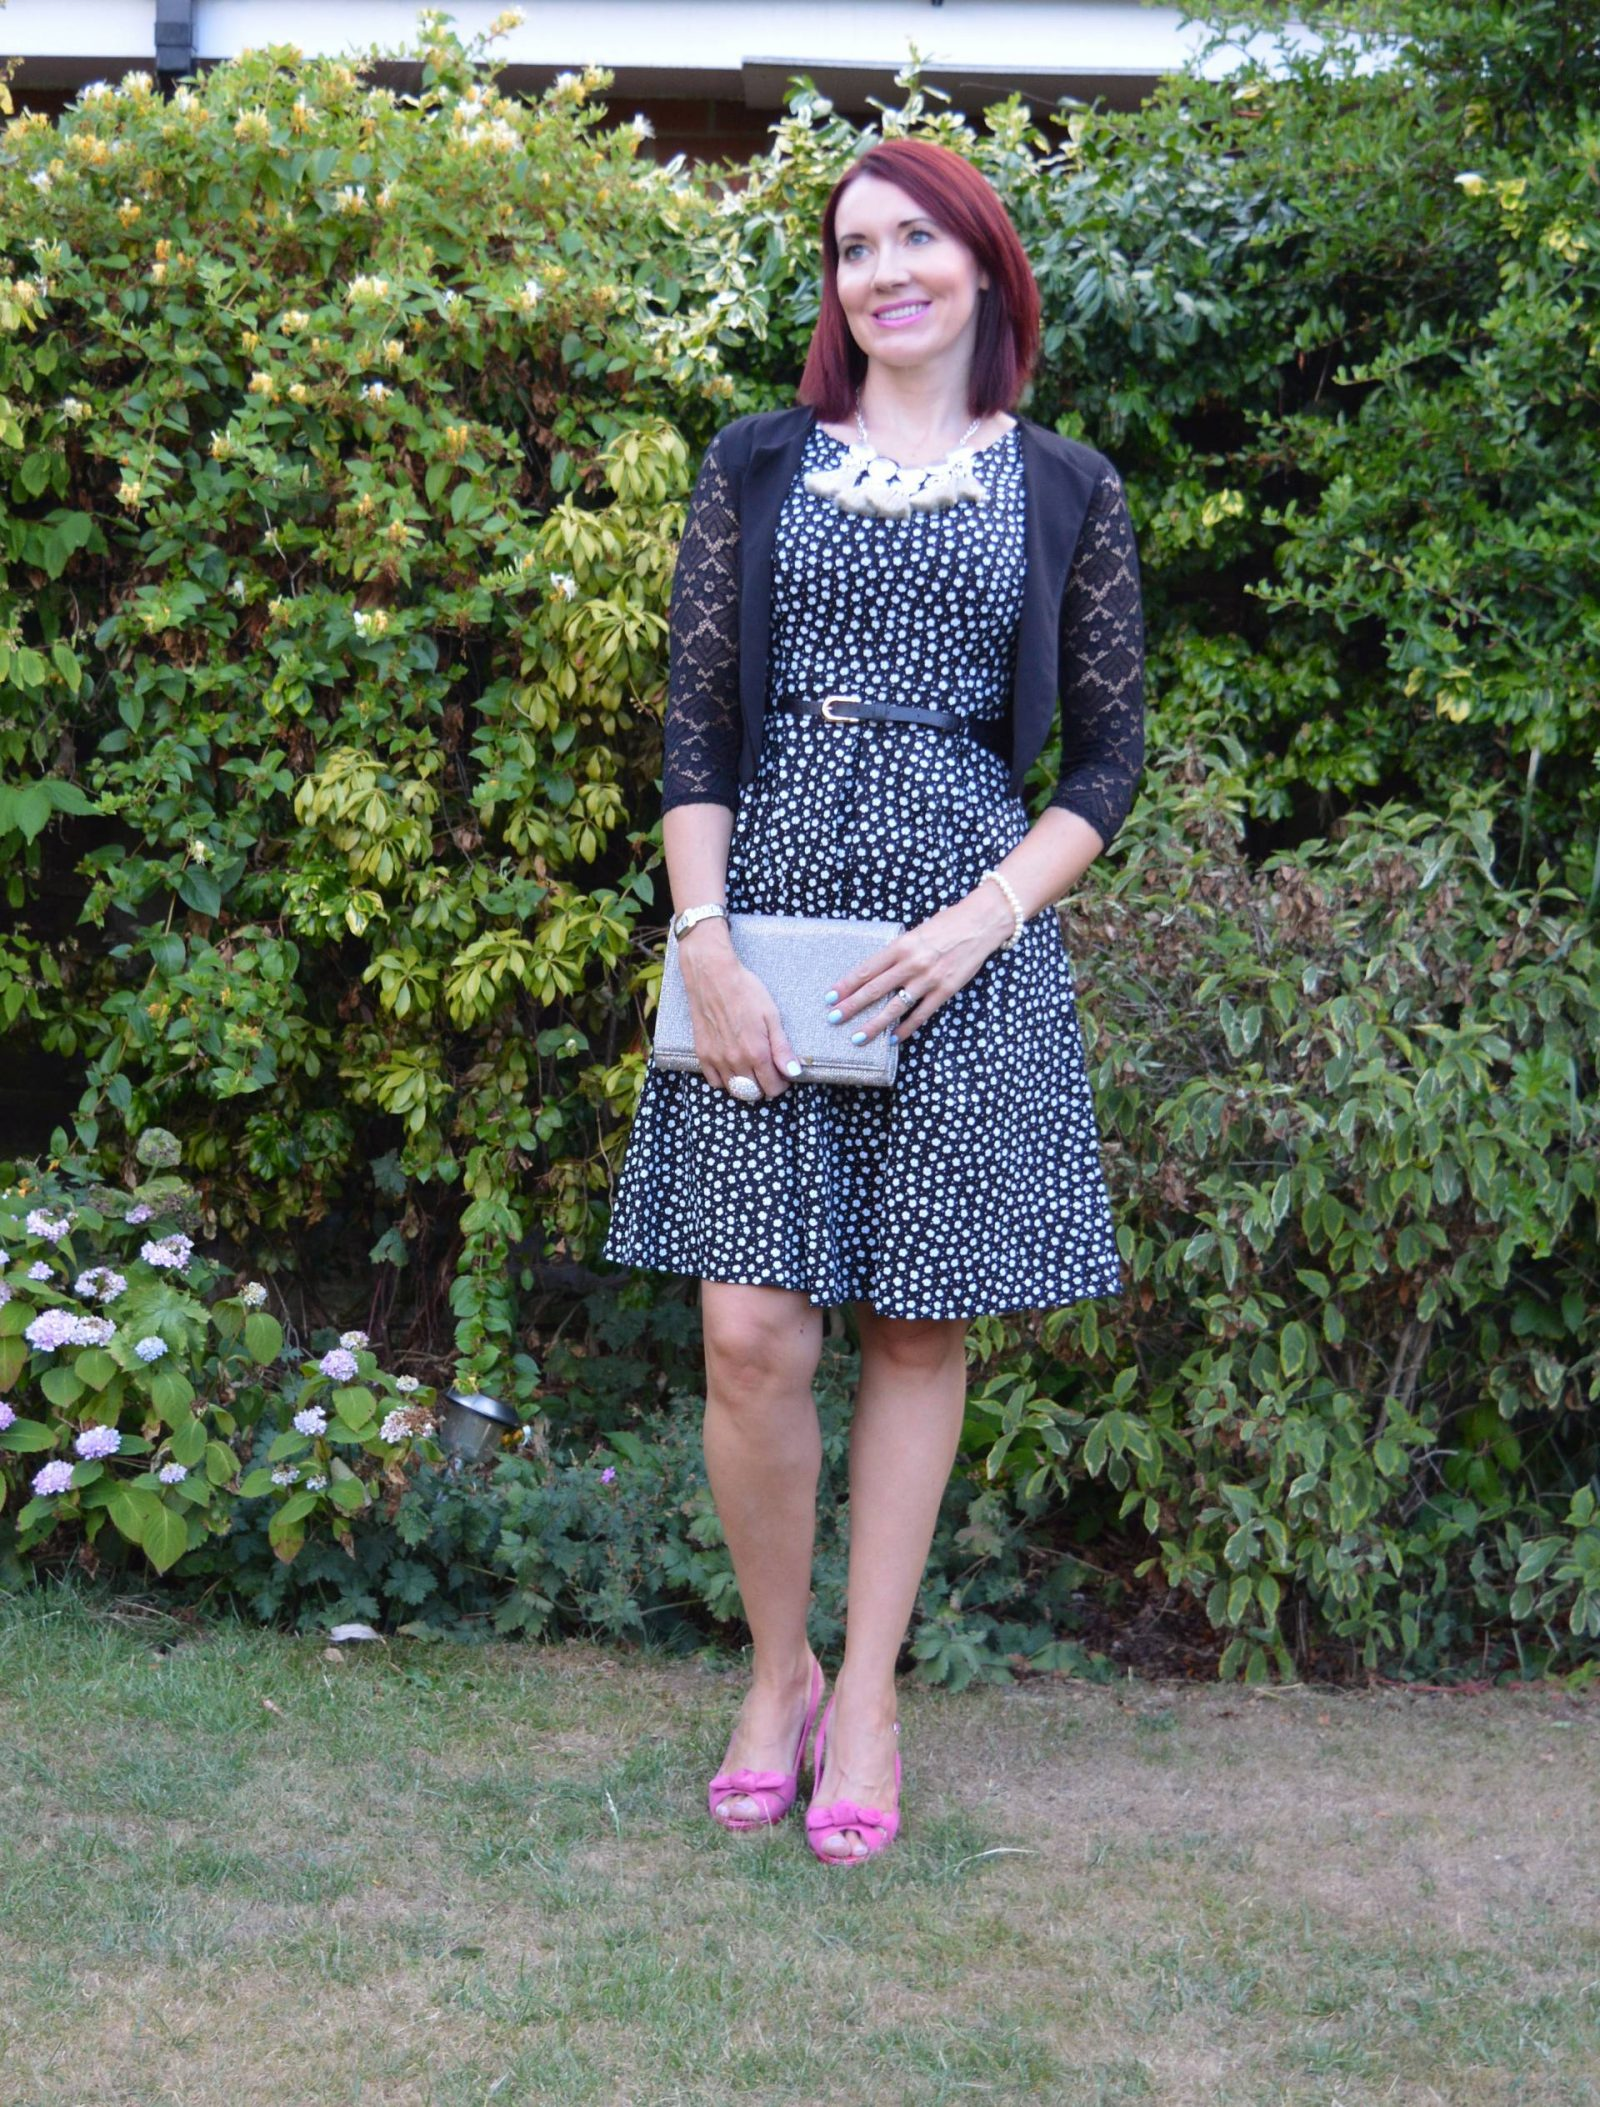 Ditsy print fit and flare dress with silver accessories